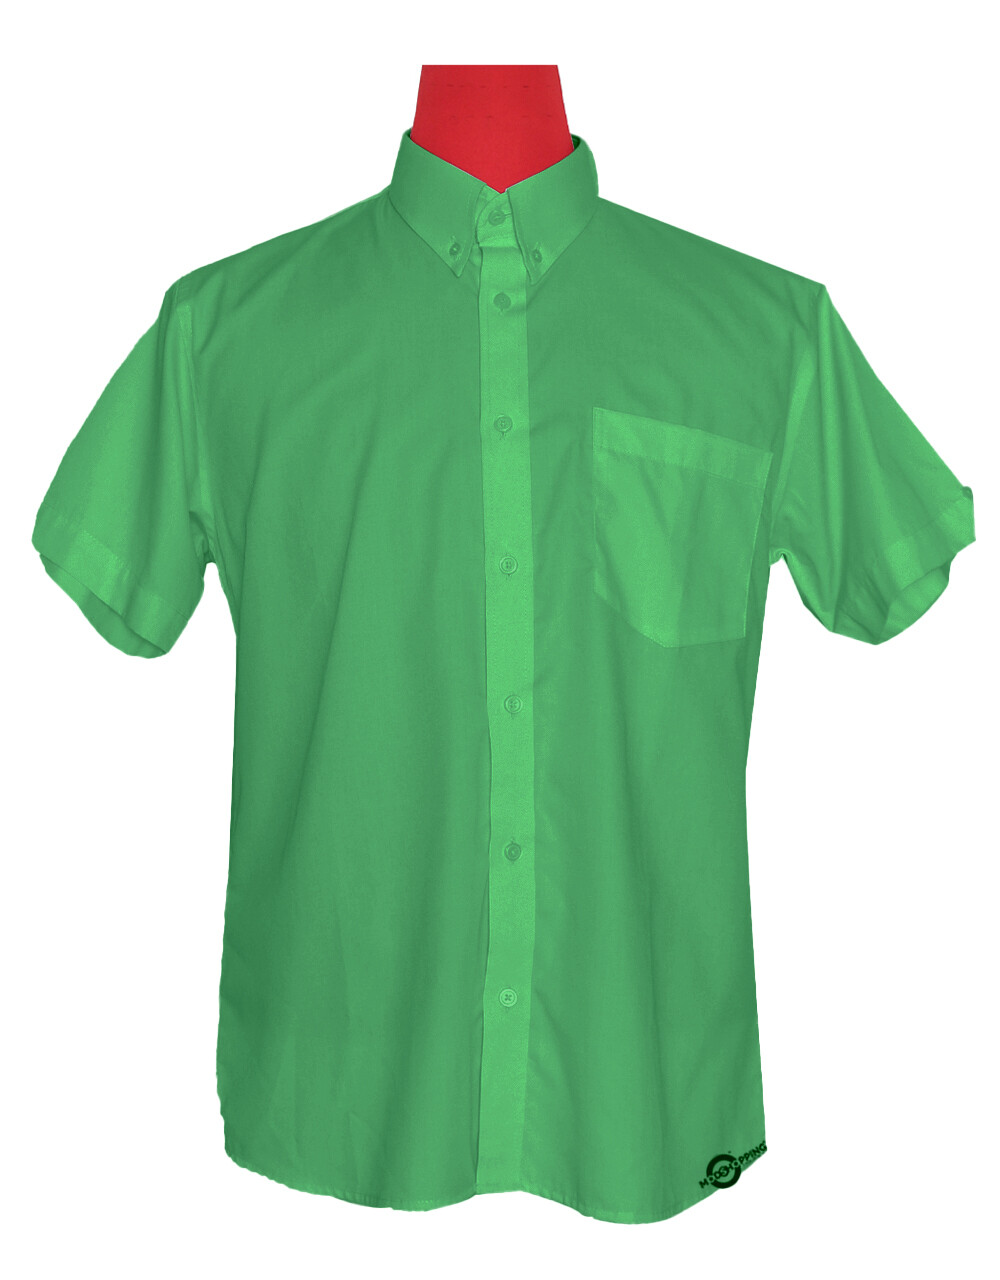 Short-Sleeve Shirt | 60S Mod Style Green Color Shirt For Man